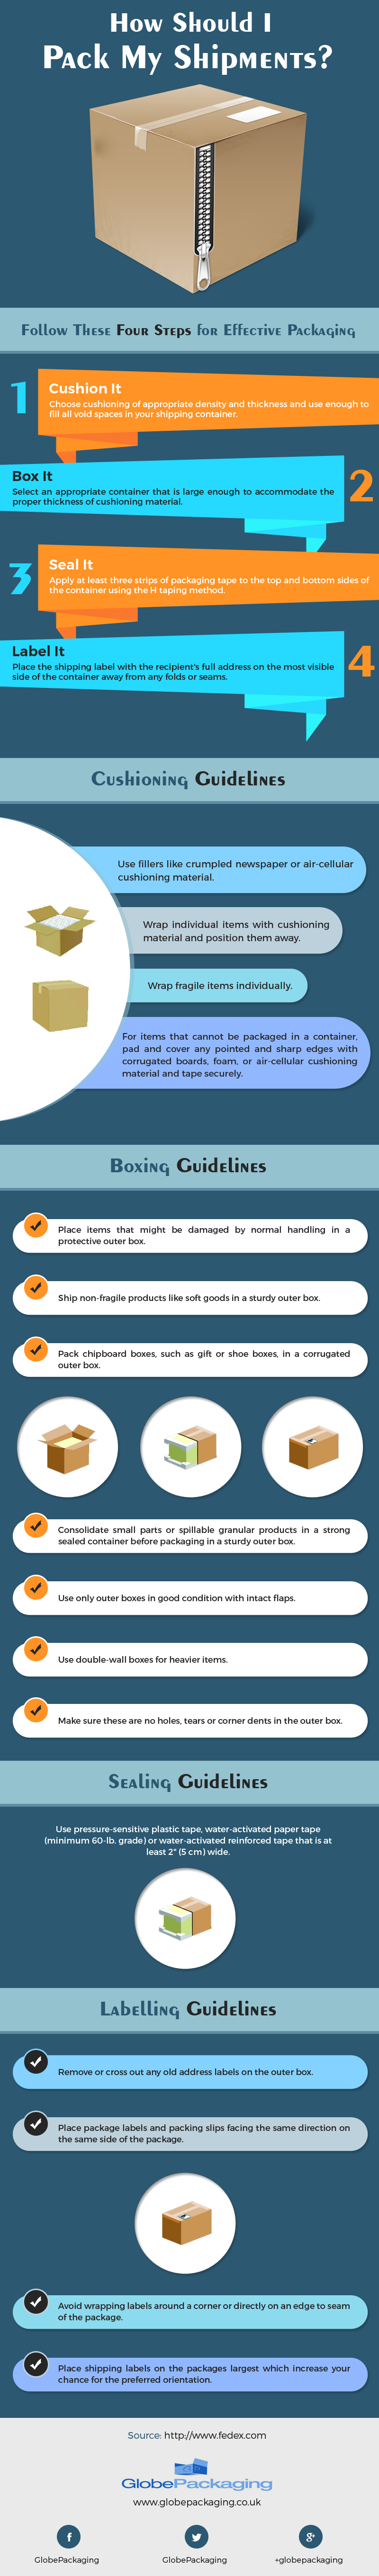 How To Pack Shipments [Infographic]